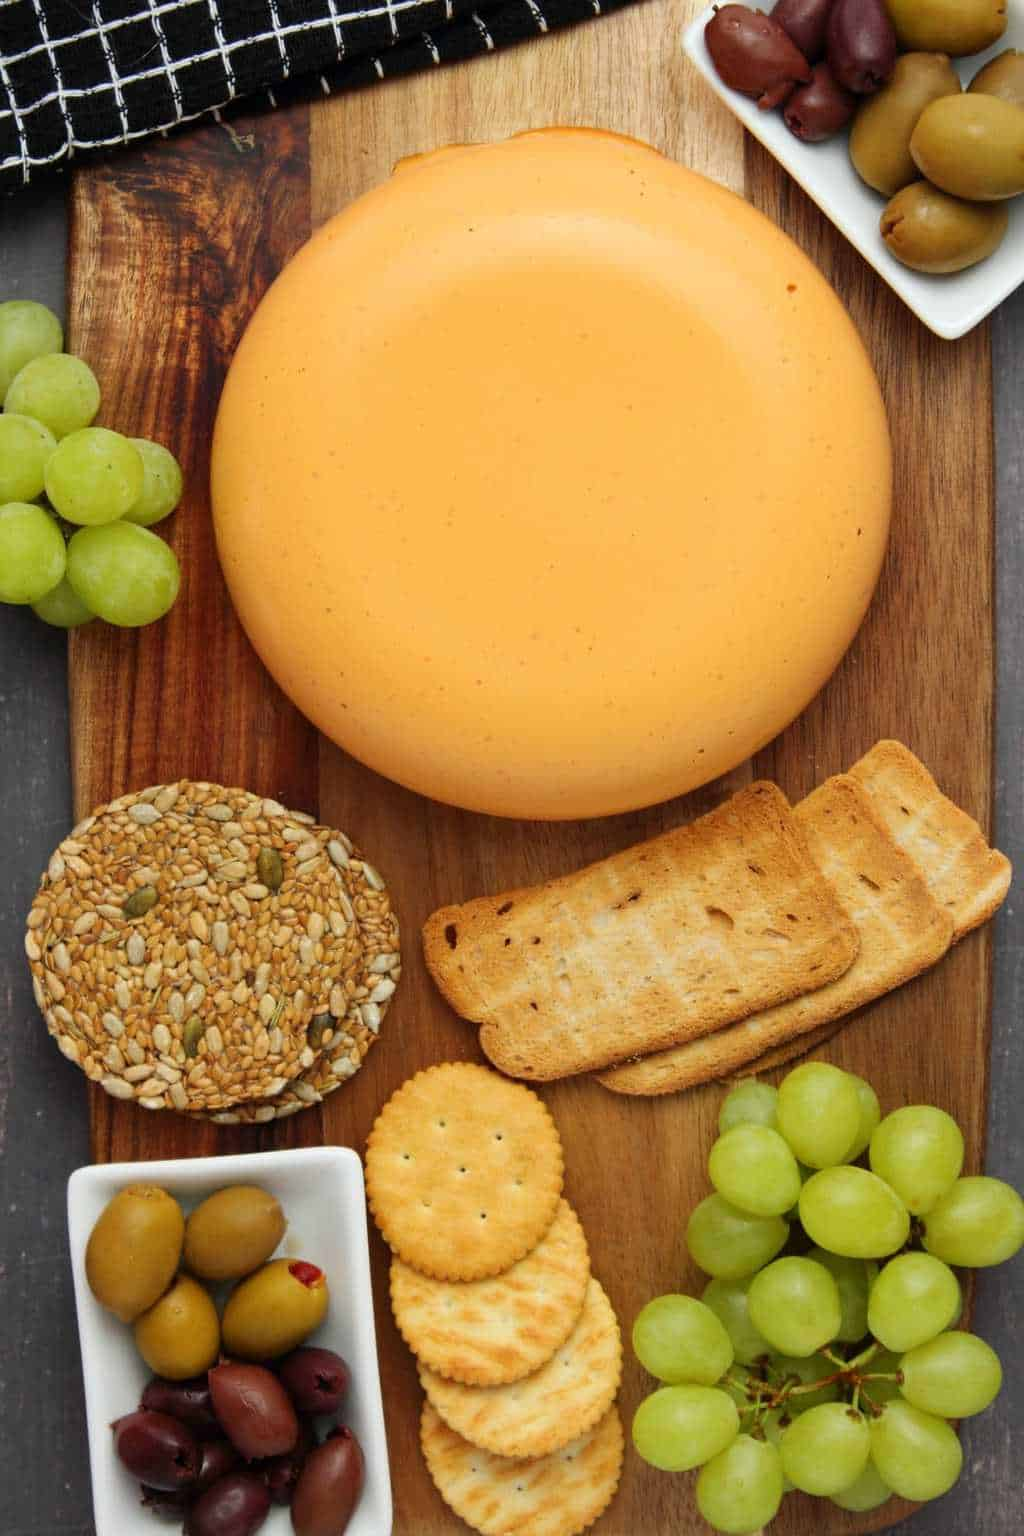 Vegan cheddar cheese round on a cheese board with crackers, olives and grapes.